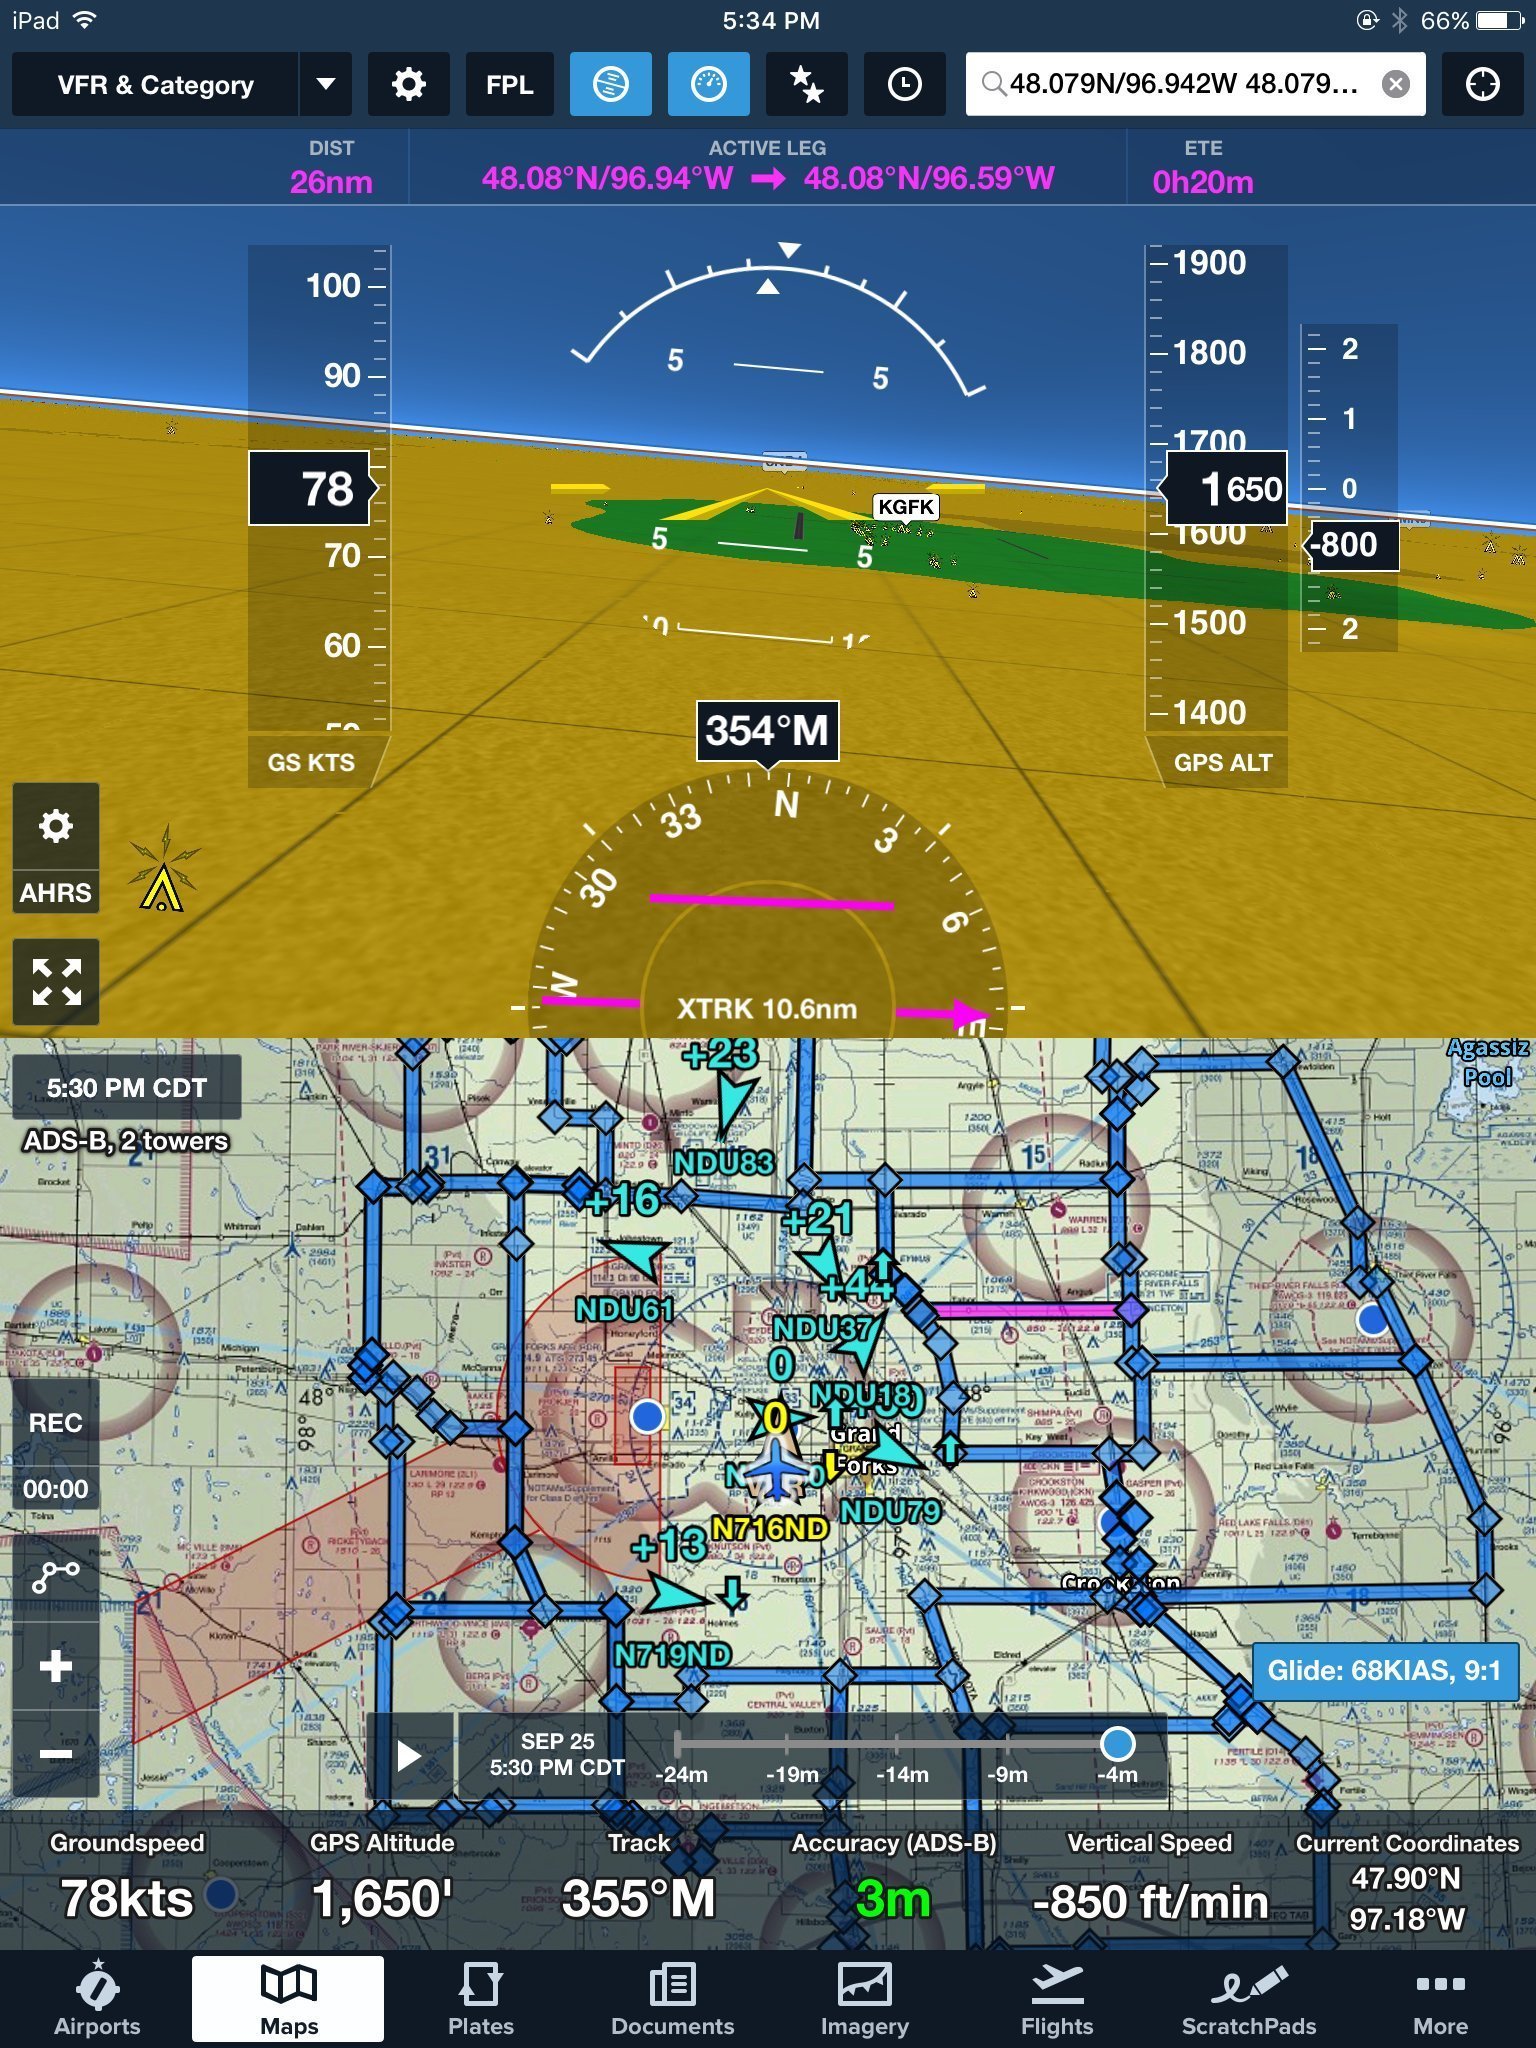 Assembled Stratux Dual Band ADS-B & Weather Receiver with AHRS WAAS GPS & Power Pack V3 by Stratux (Image #2)